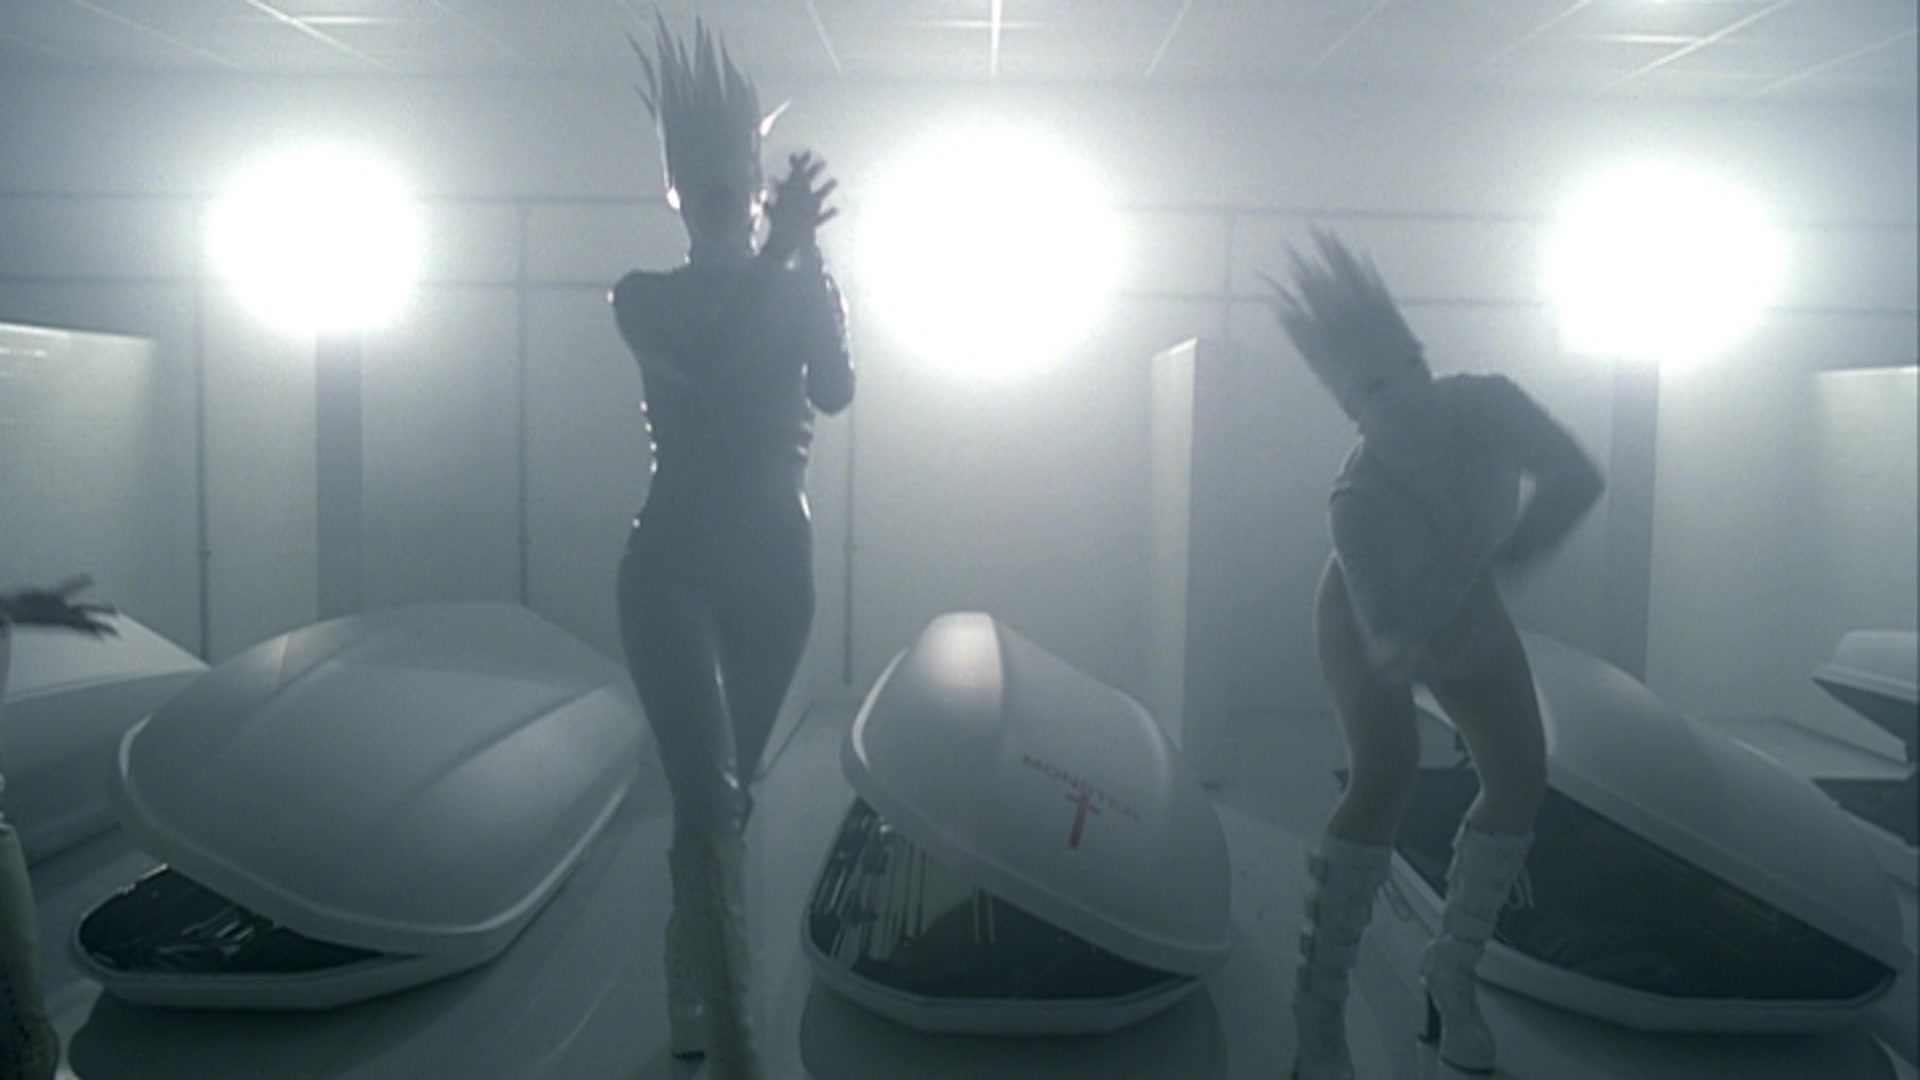 File:Lady Gaga - Bad Romance 007.jpg